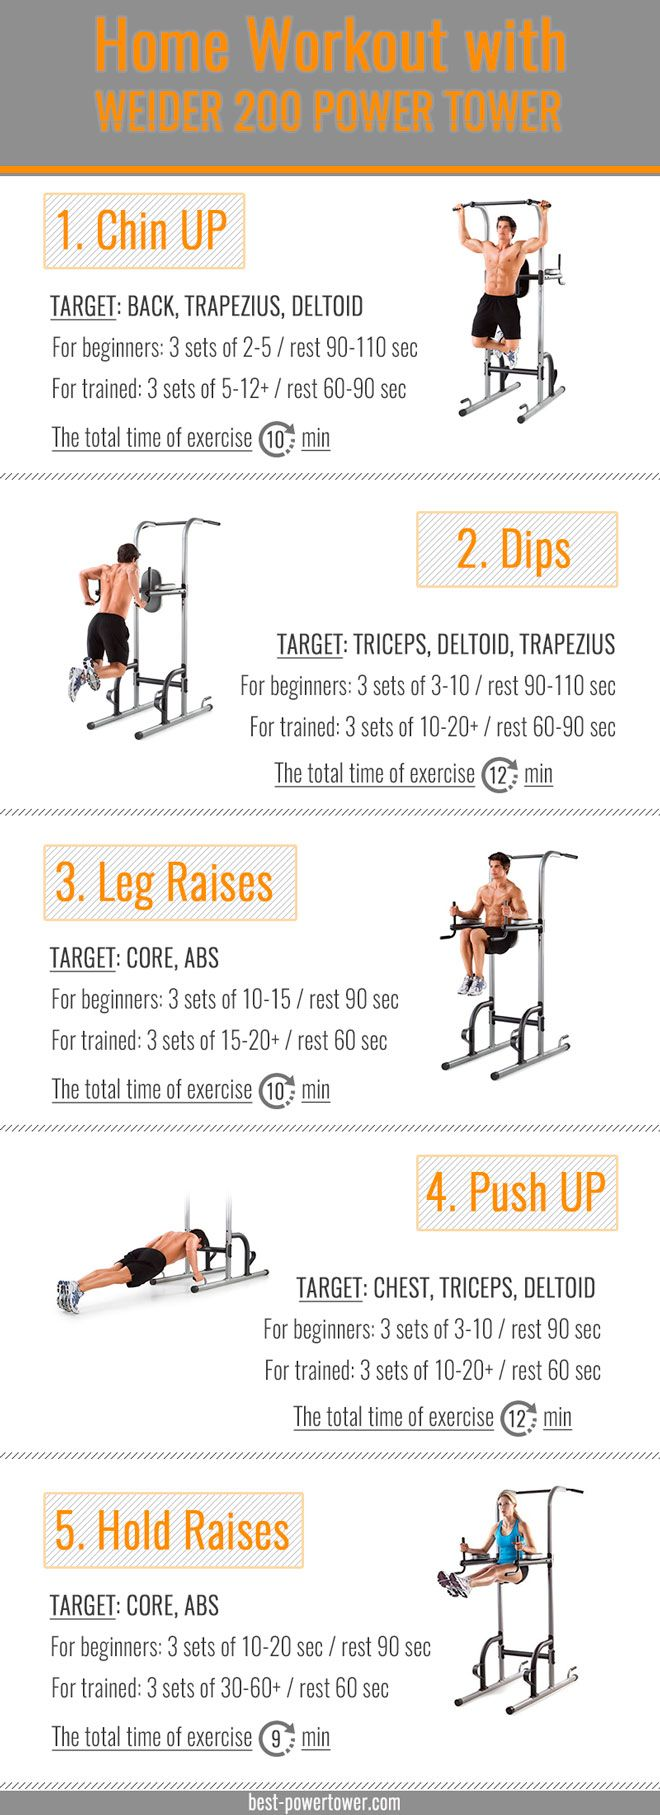 Weider 200 Power Tower Workout - the basic exercises you can perform Weider 200 #powertower #powertowerworkout #workout #weider